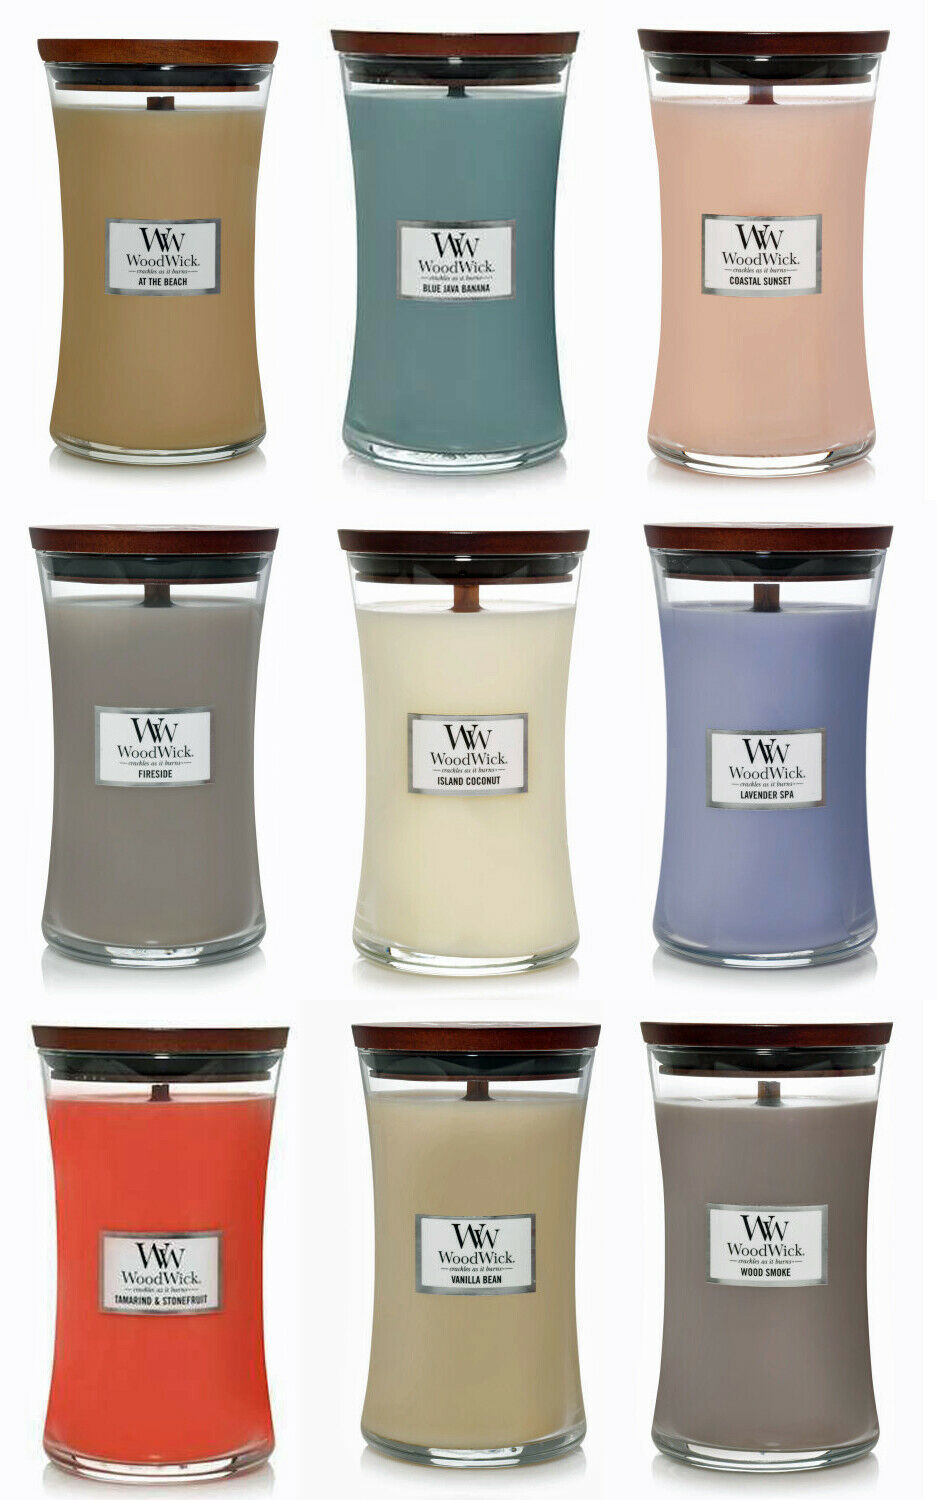 1 Yankee Candle WoodWick LAVENDER VANILLA Large Hourglass Jar Candle 21.5 oz